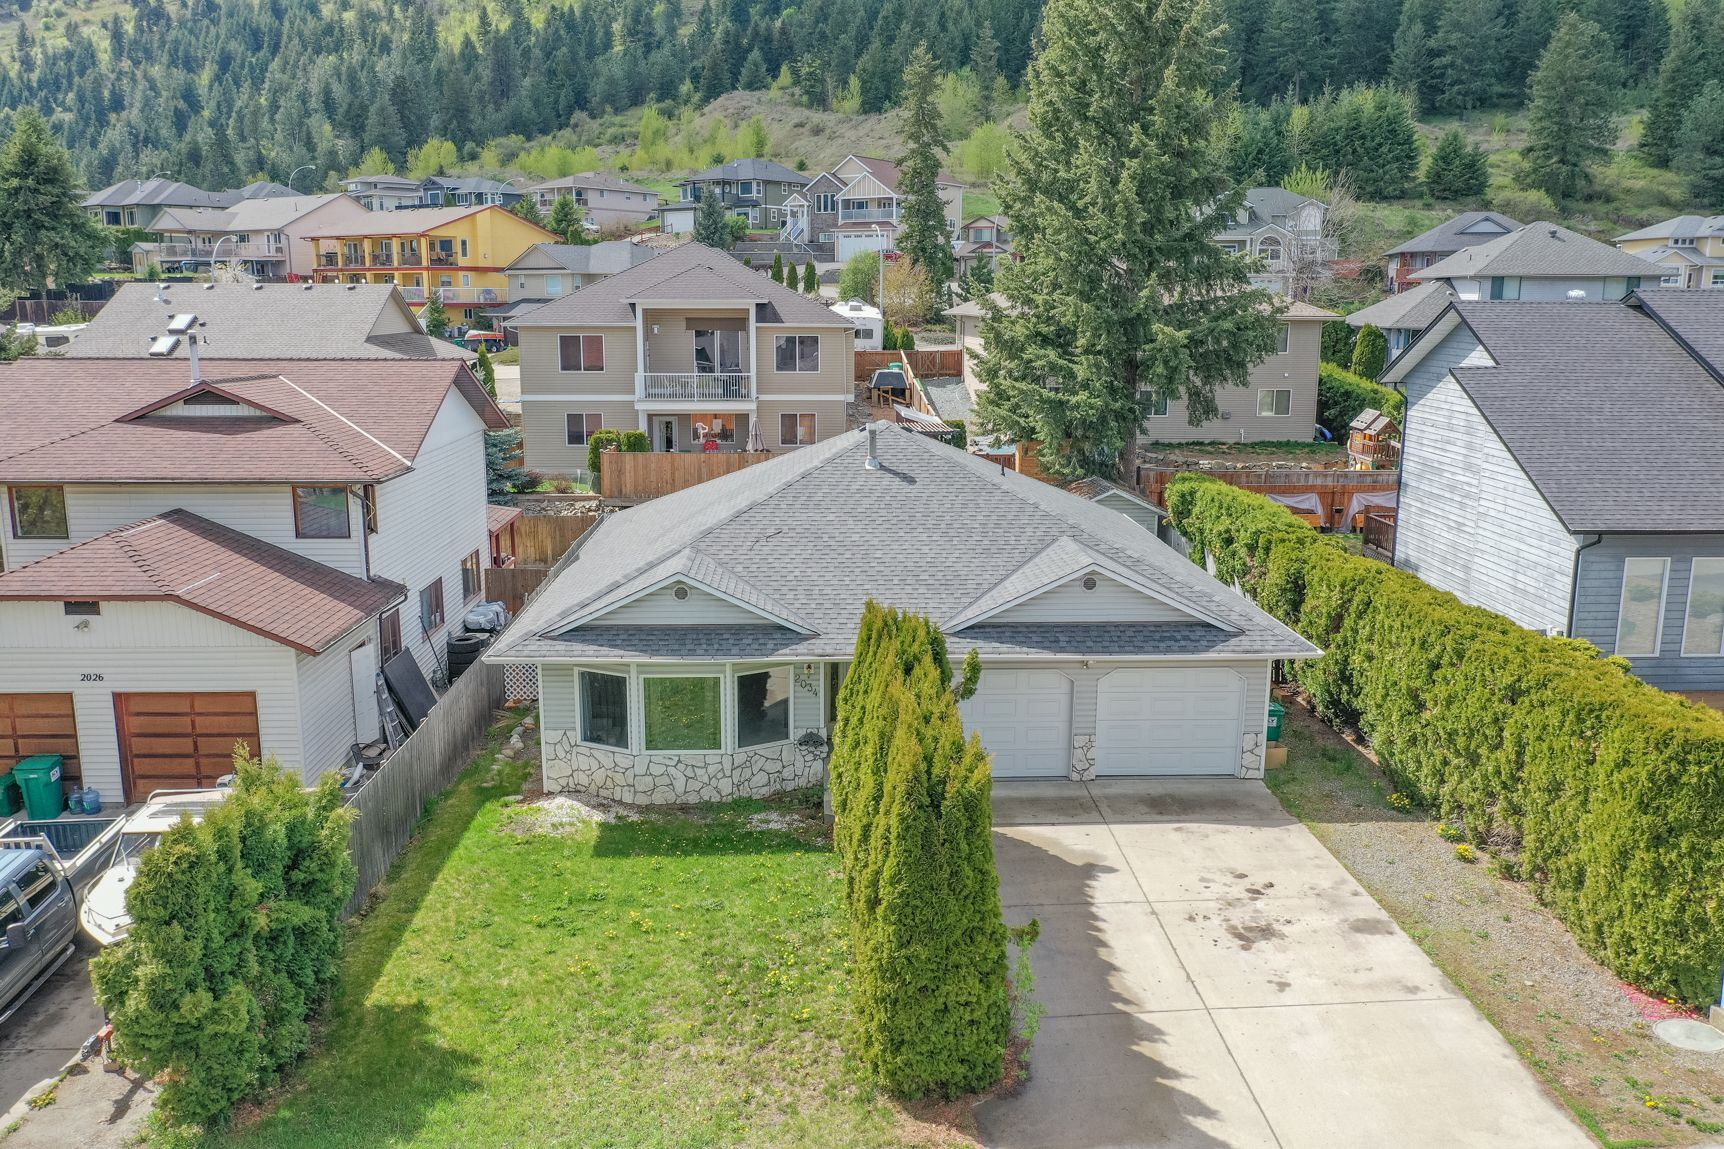 Main Photo: 2034 Saddleview Avenue in Lumby: House for sale : MLS®# 10230997